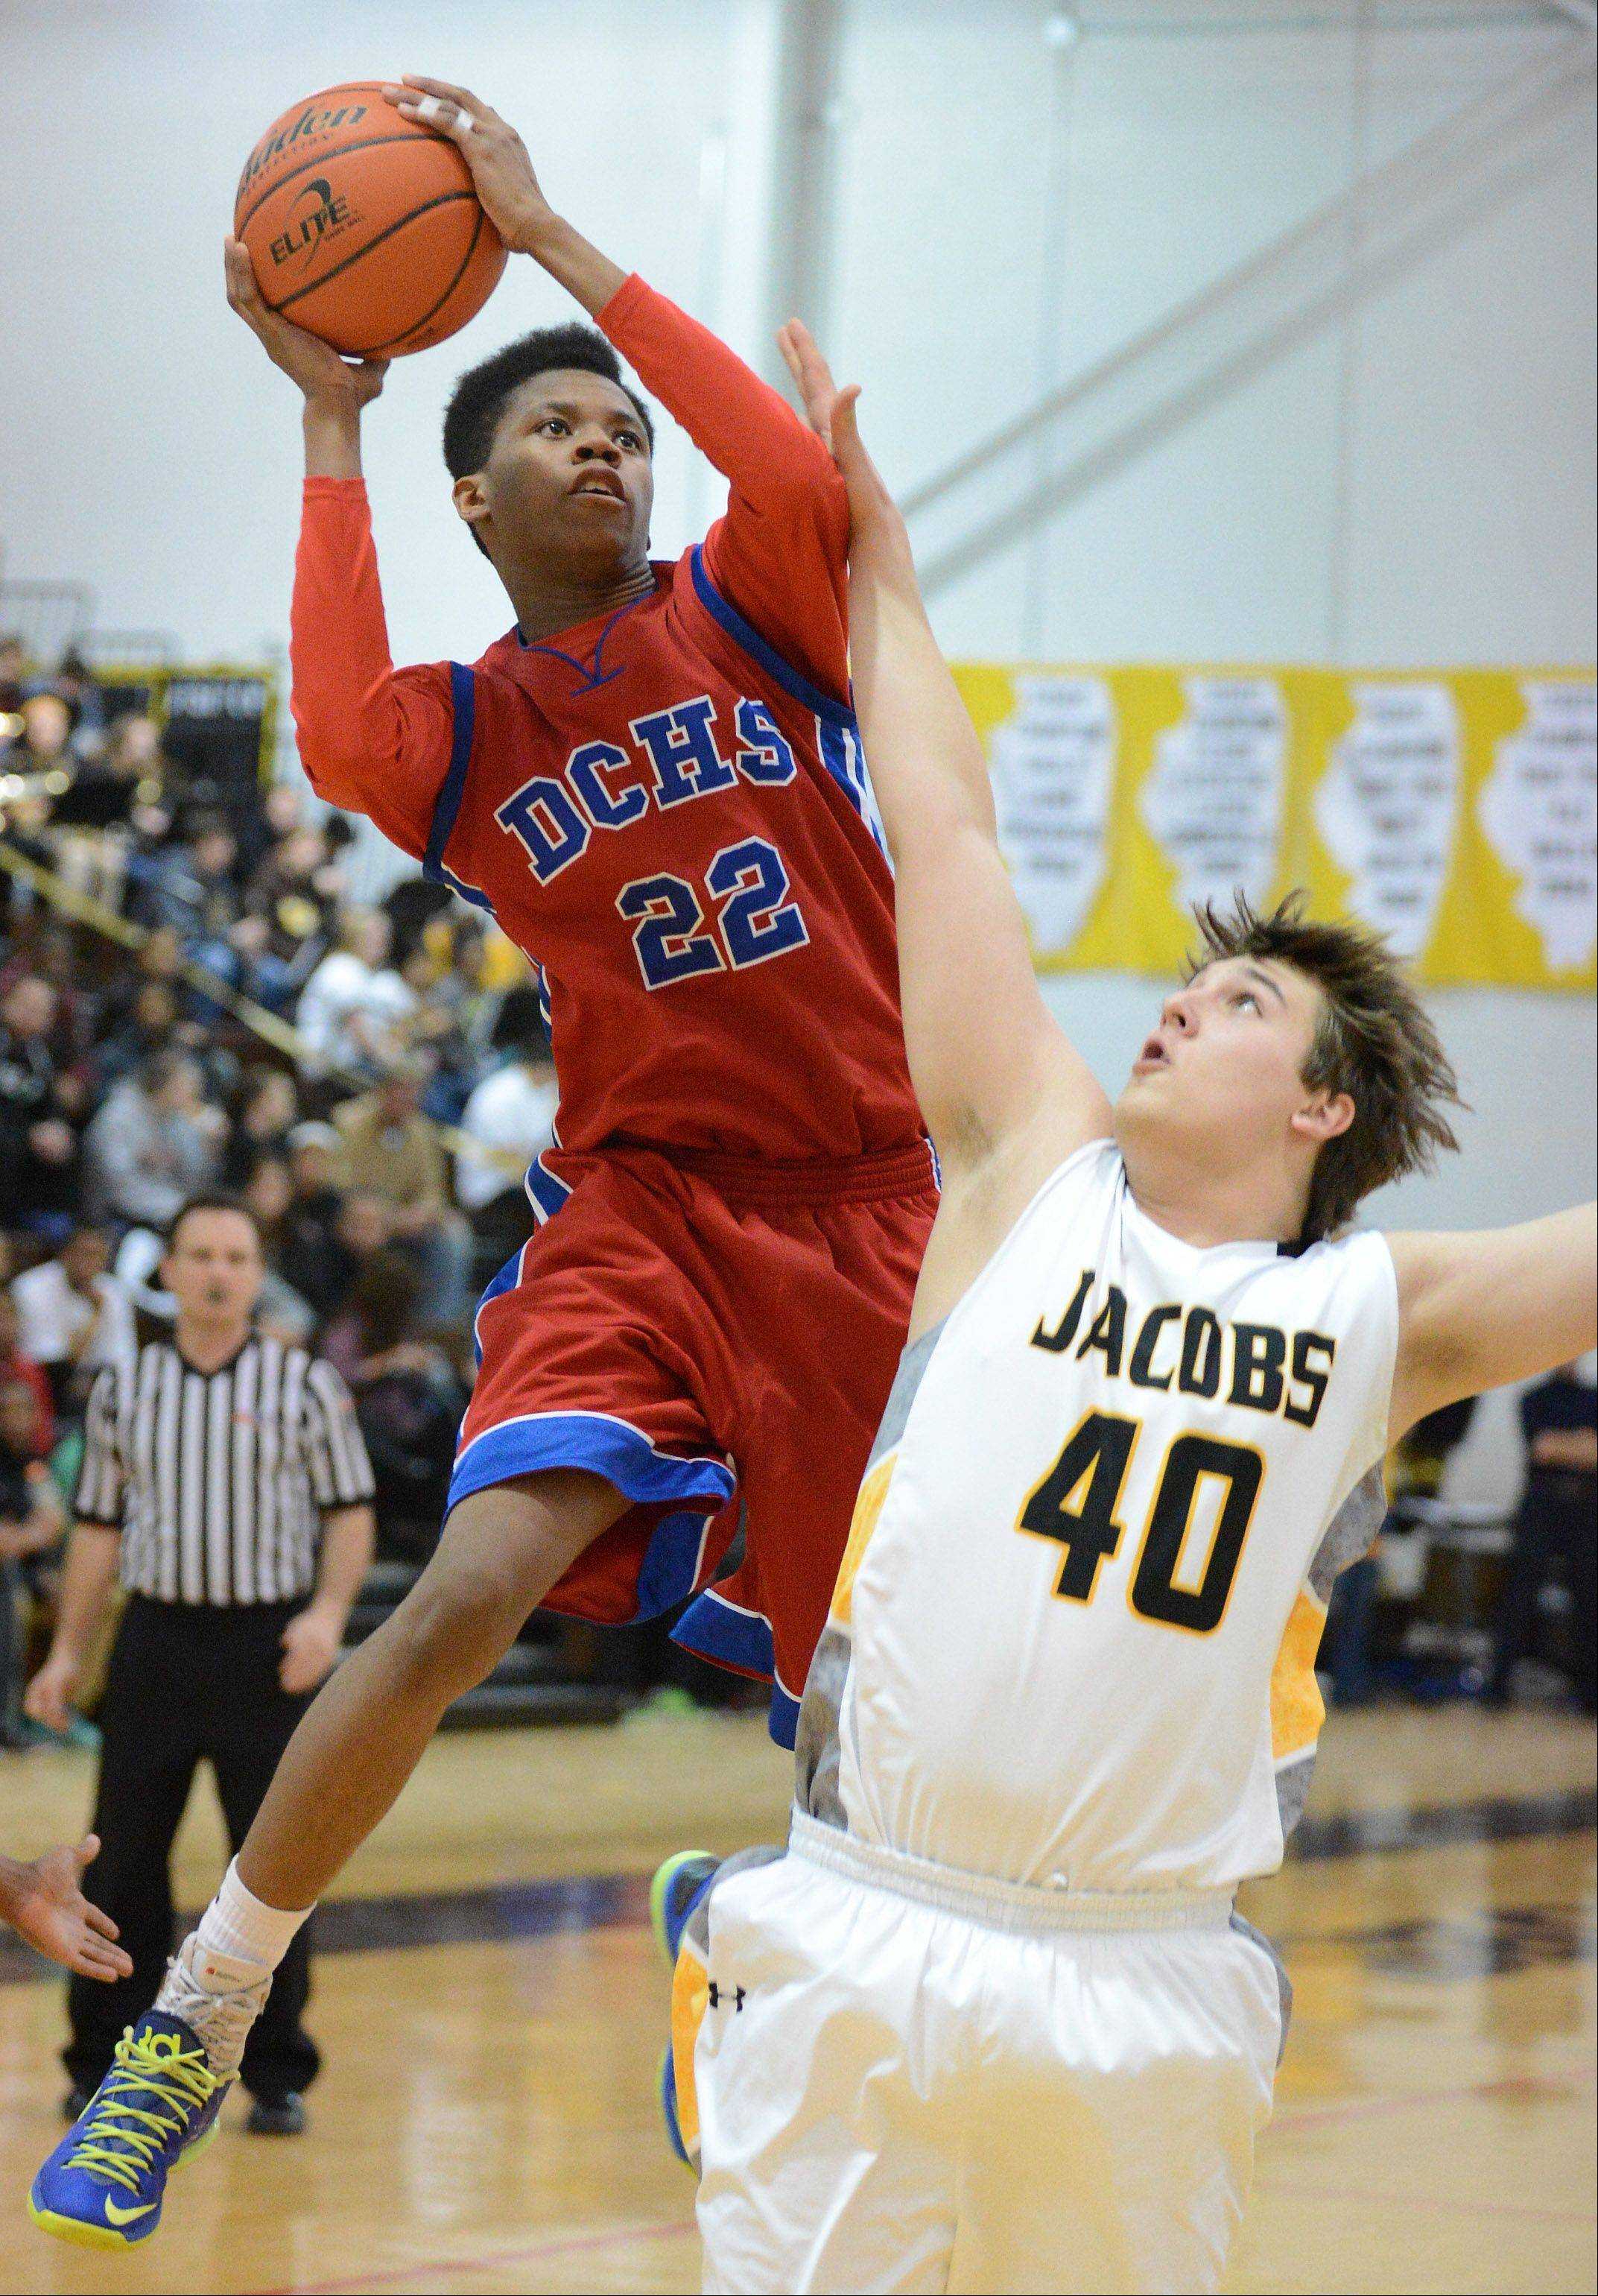 Dundee-Crown's Juwan Stewart shoots and scores over Matt Bindi of Jacobs during Wednesday's game in Algonquin.